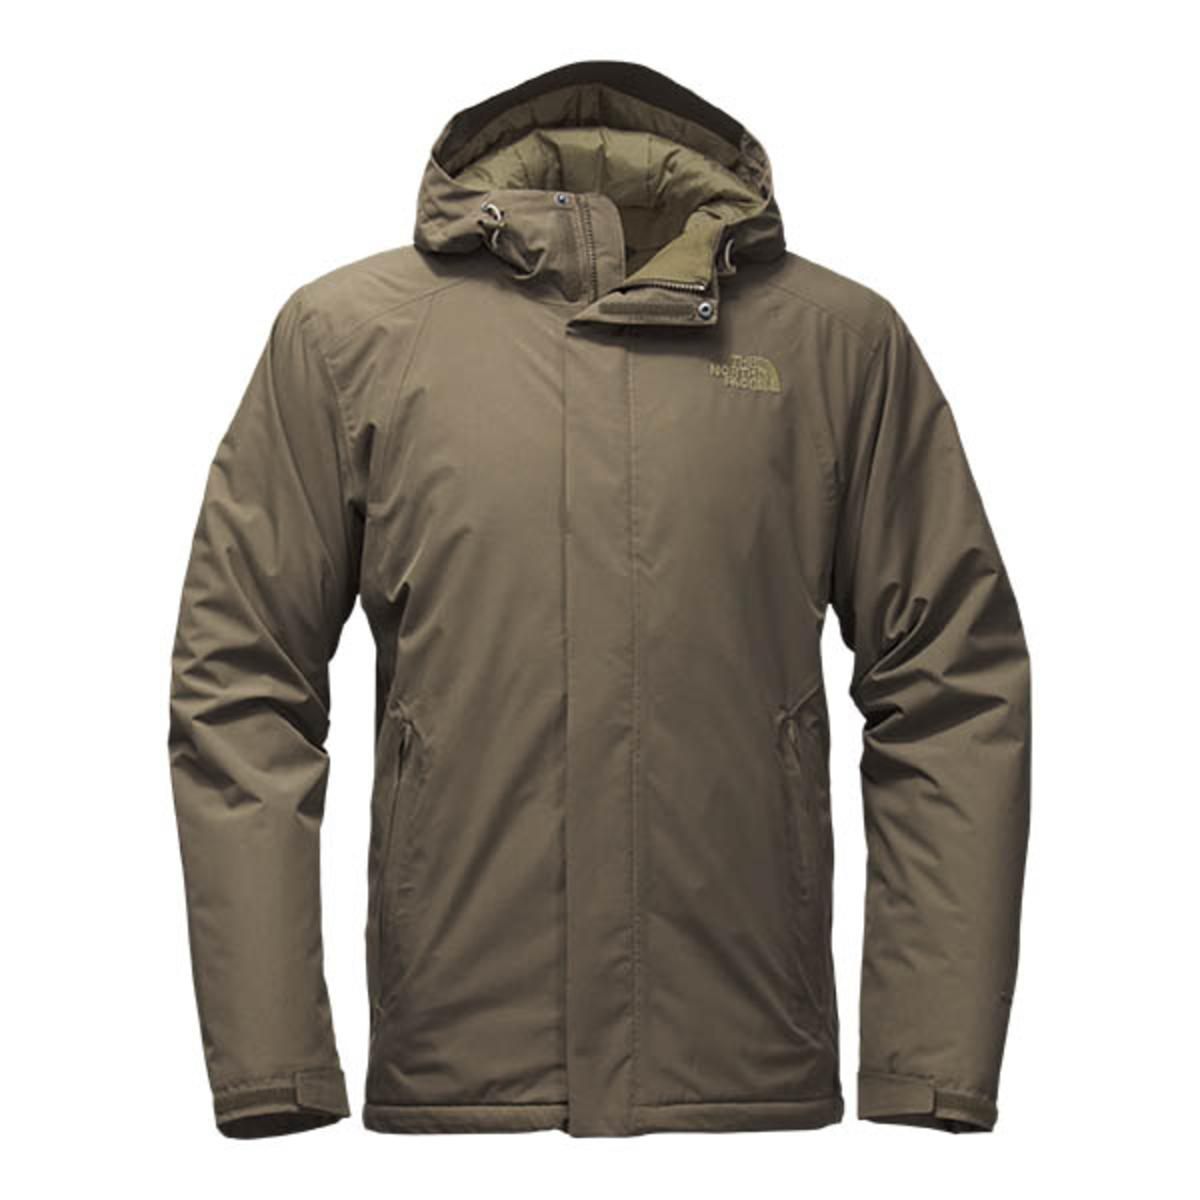 ec06d5fb4 The North Face Men's Inlux Insulated Jacket - The Warming Store